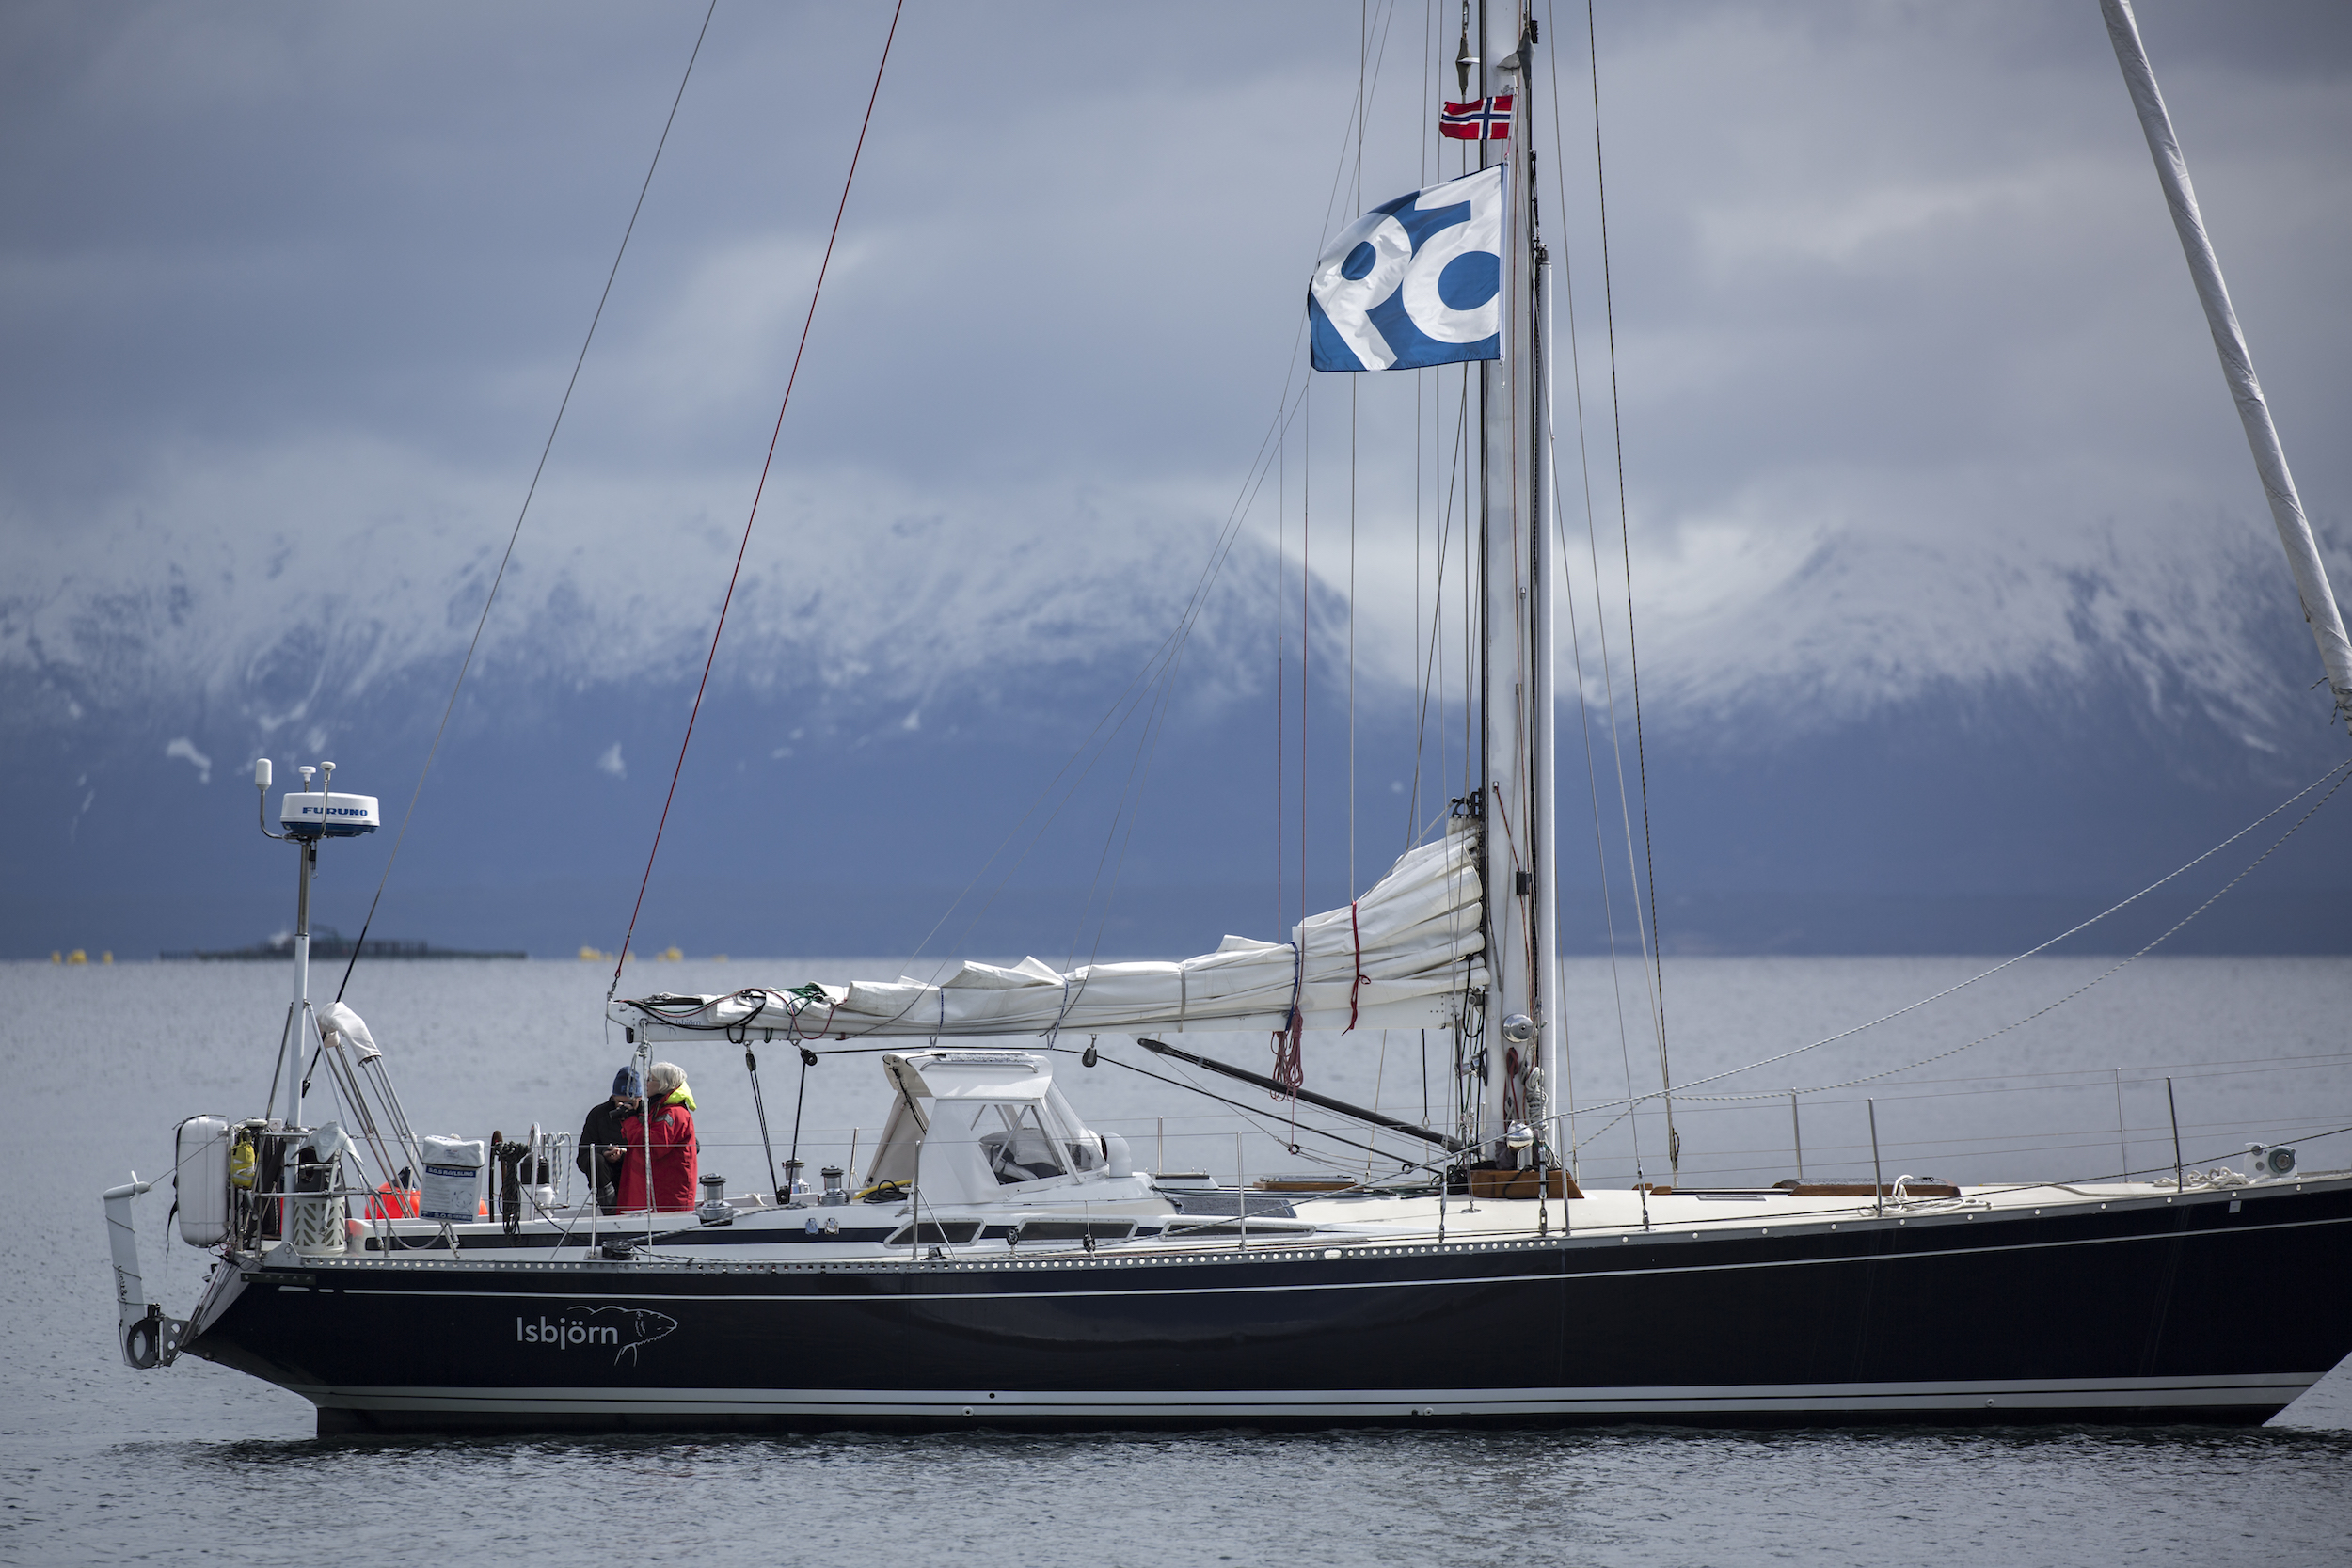 Isbjorn on anchor as we readied for departure towards Svalbard.